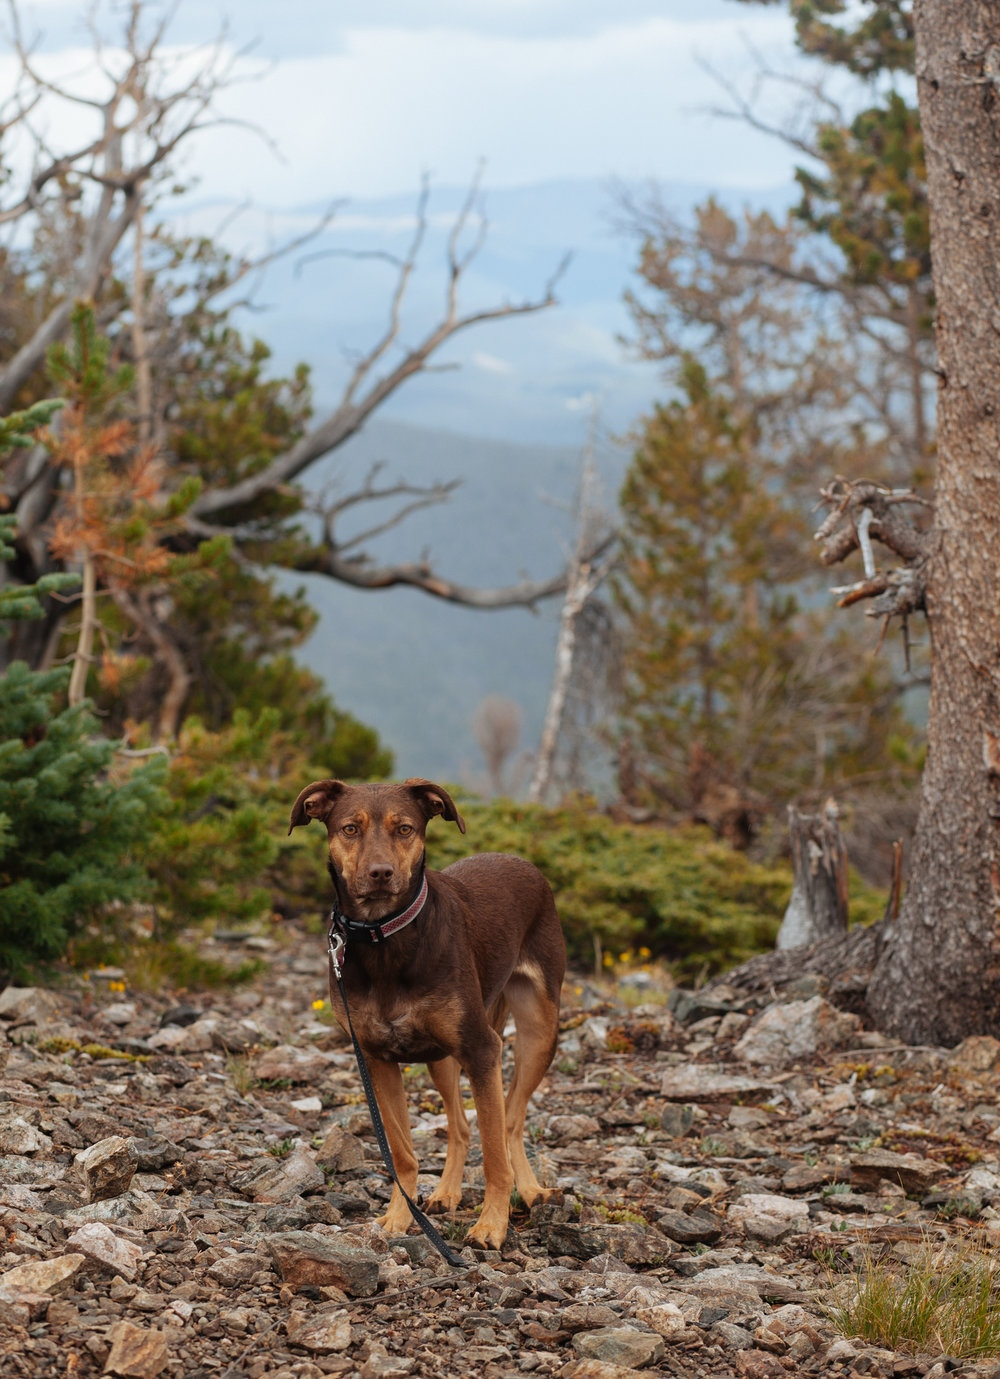 Marley at the top of Mount Royal (10,502 feet), White River National Forest, CO.